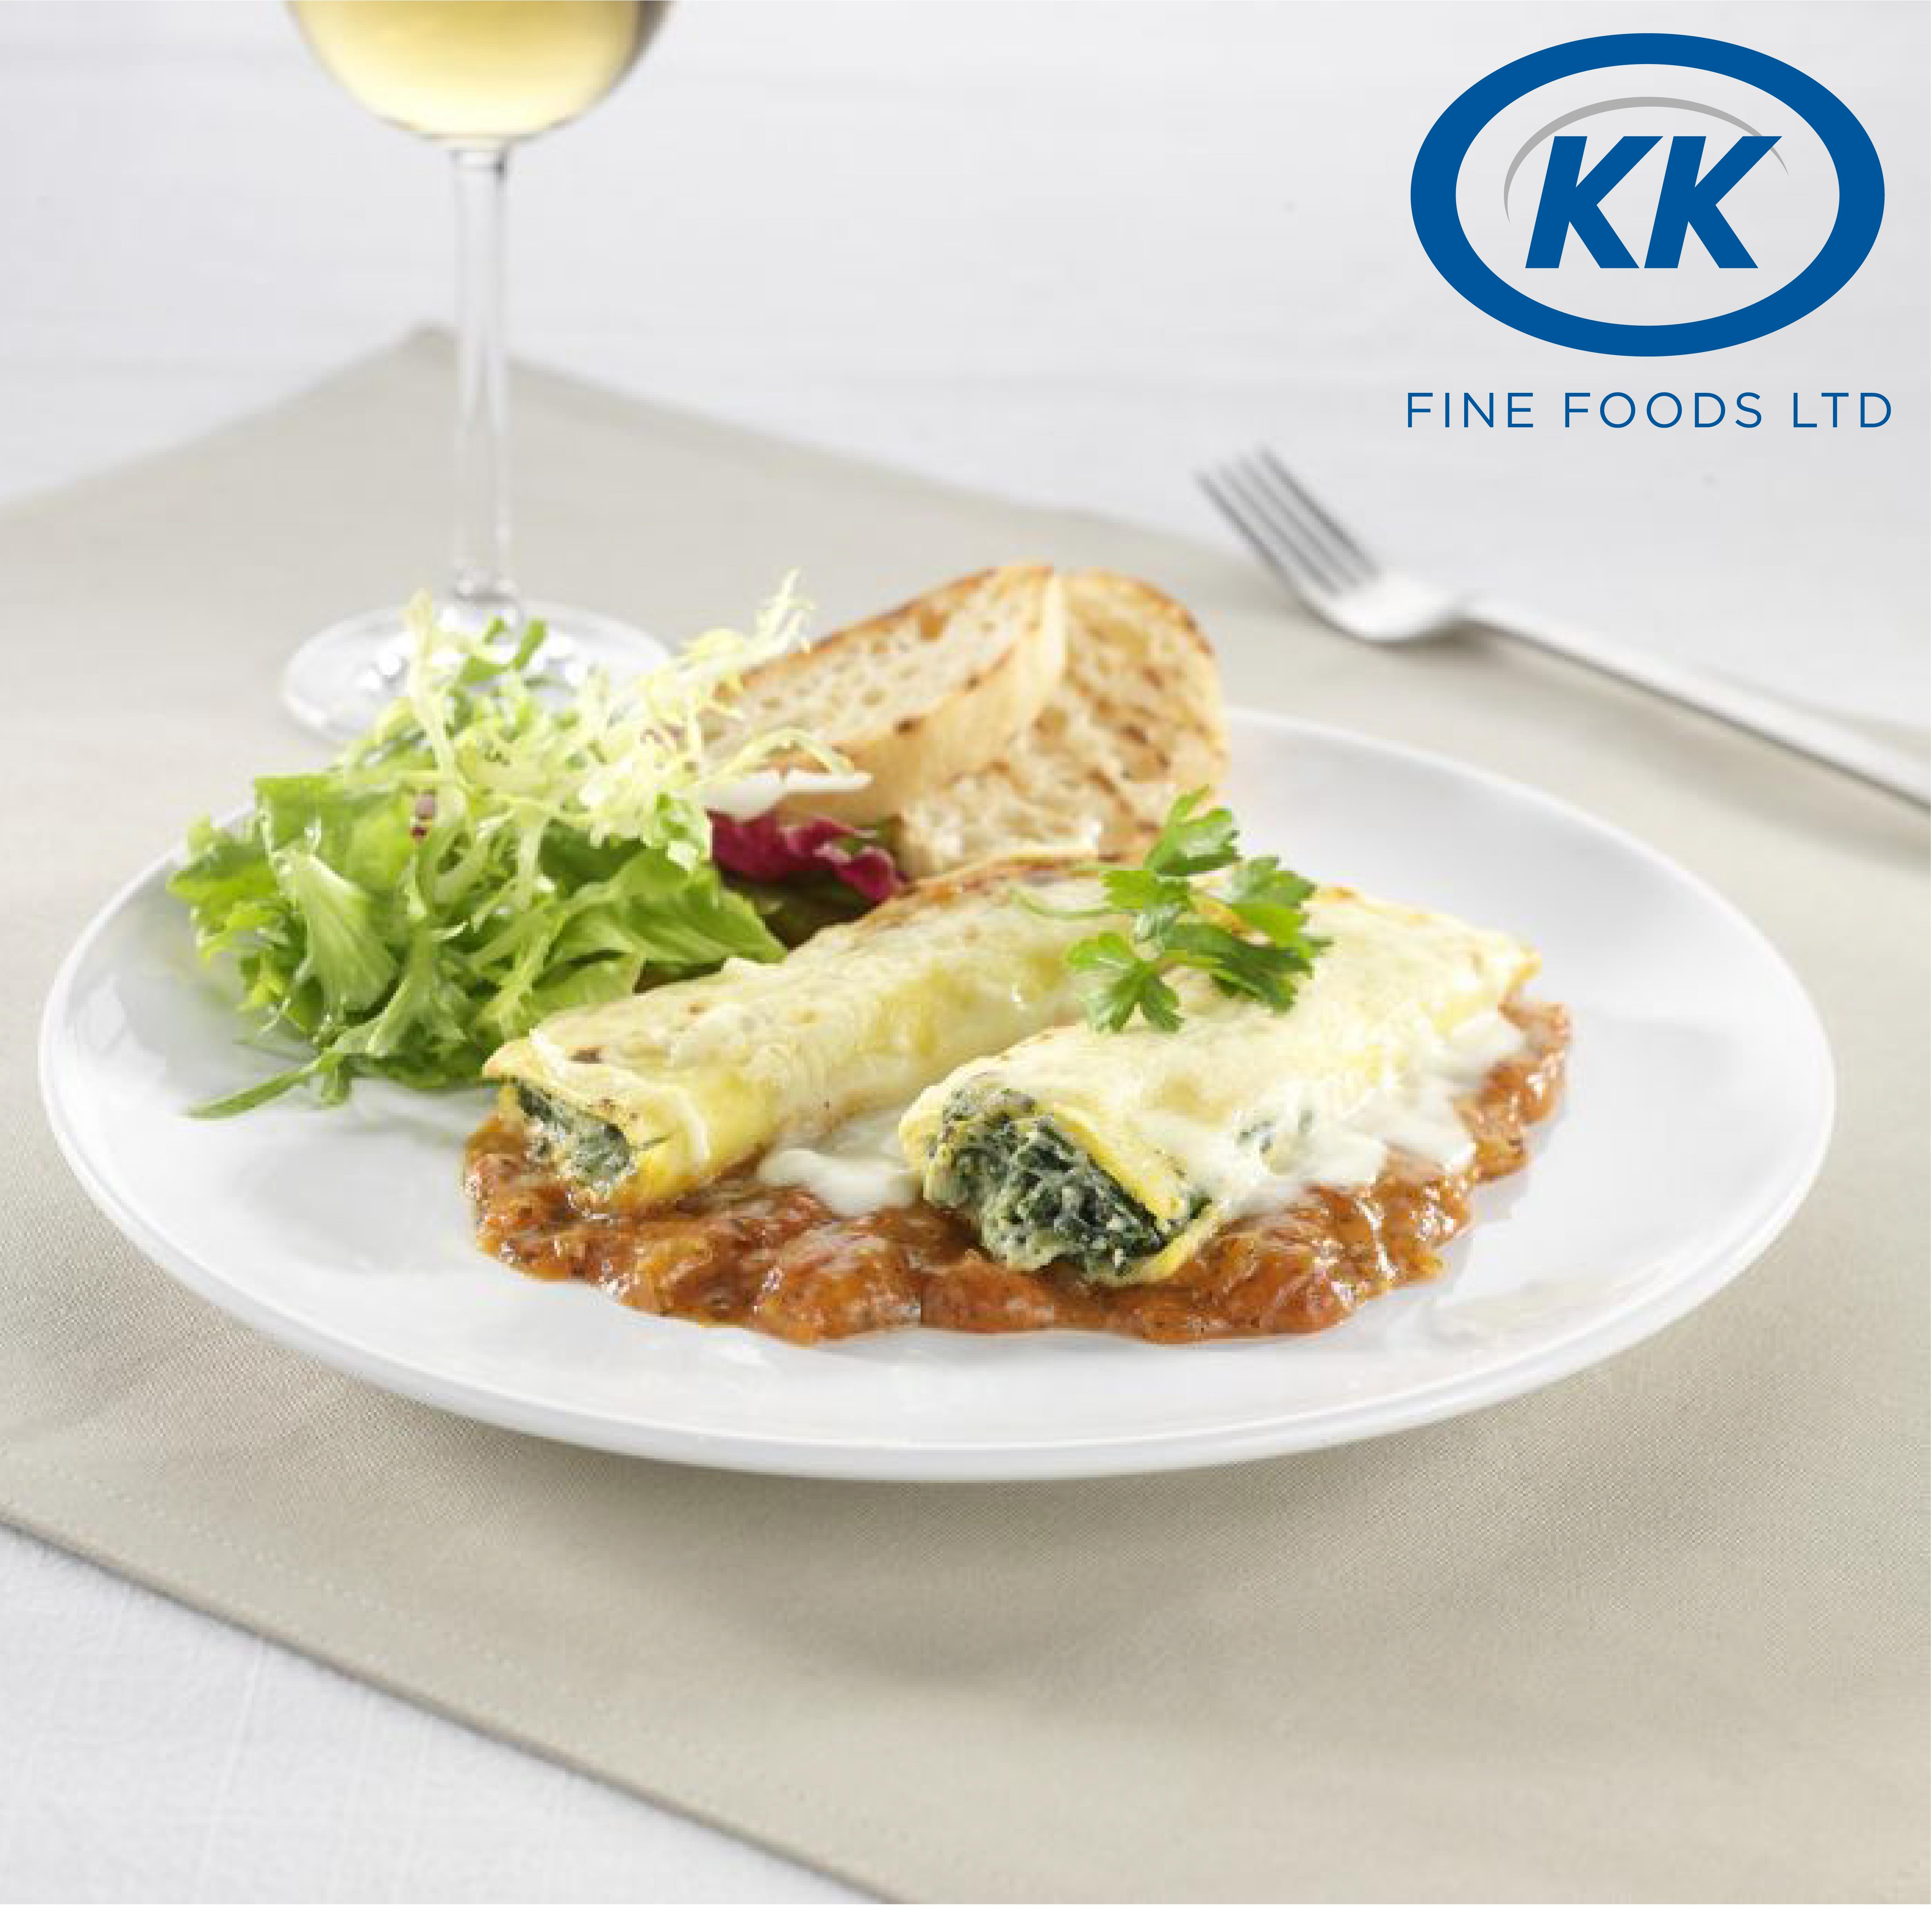 K.K Spinach and Ricotta Cannelloni 12 x 400g